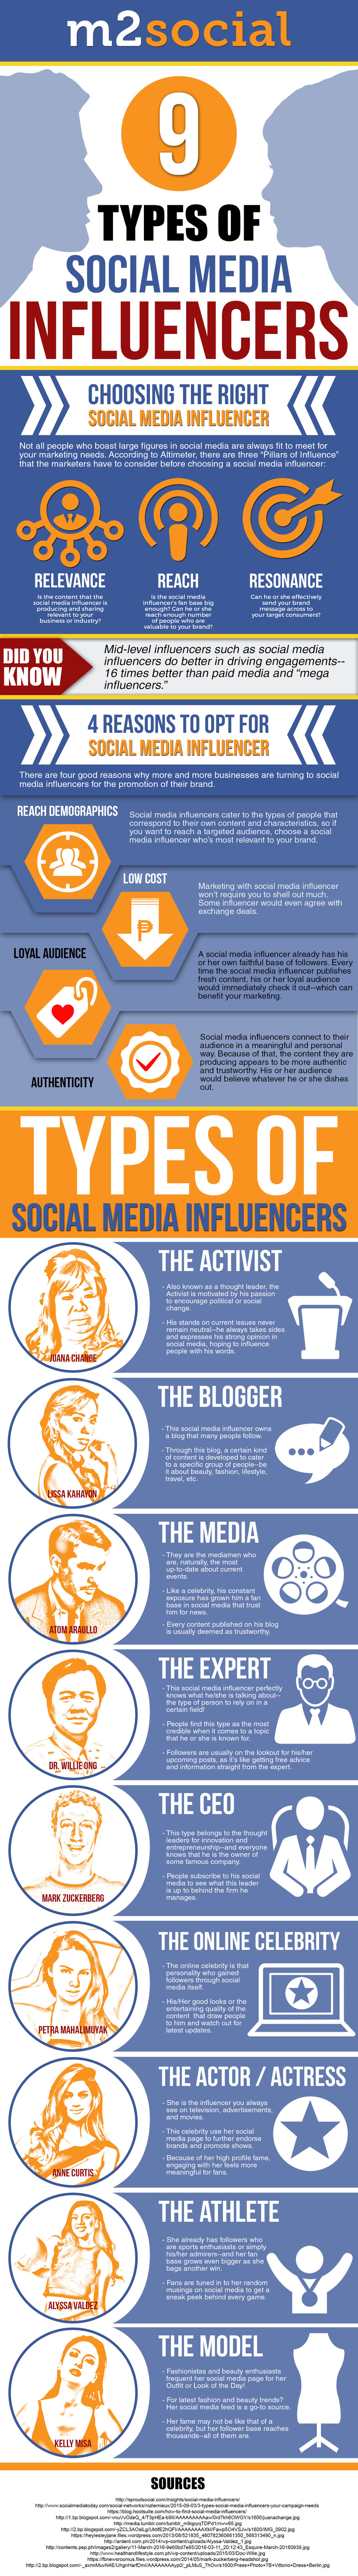 9 Types of Social Media Influencers